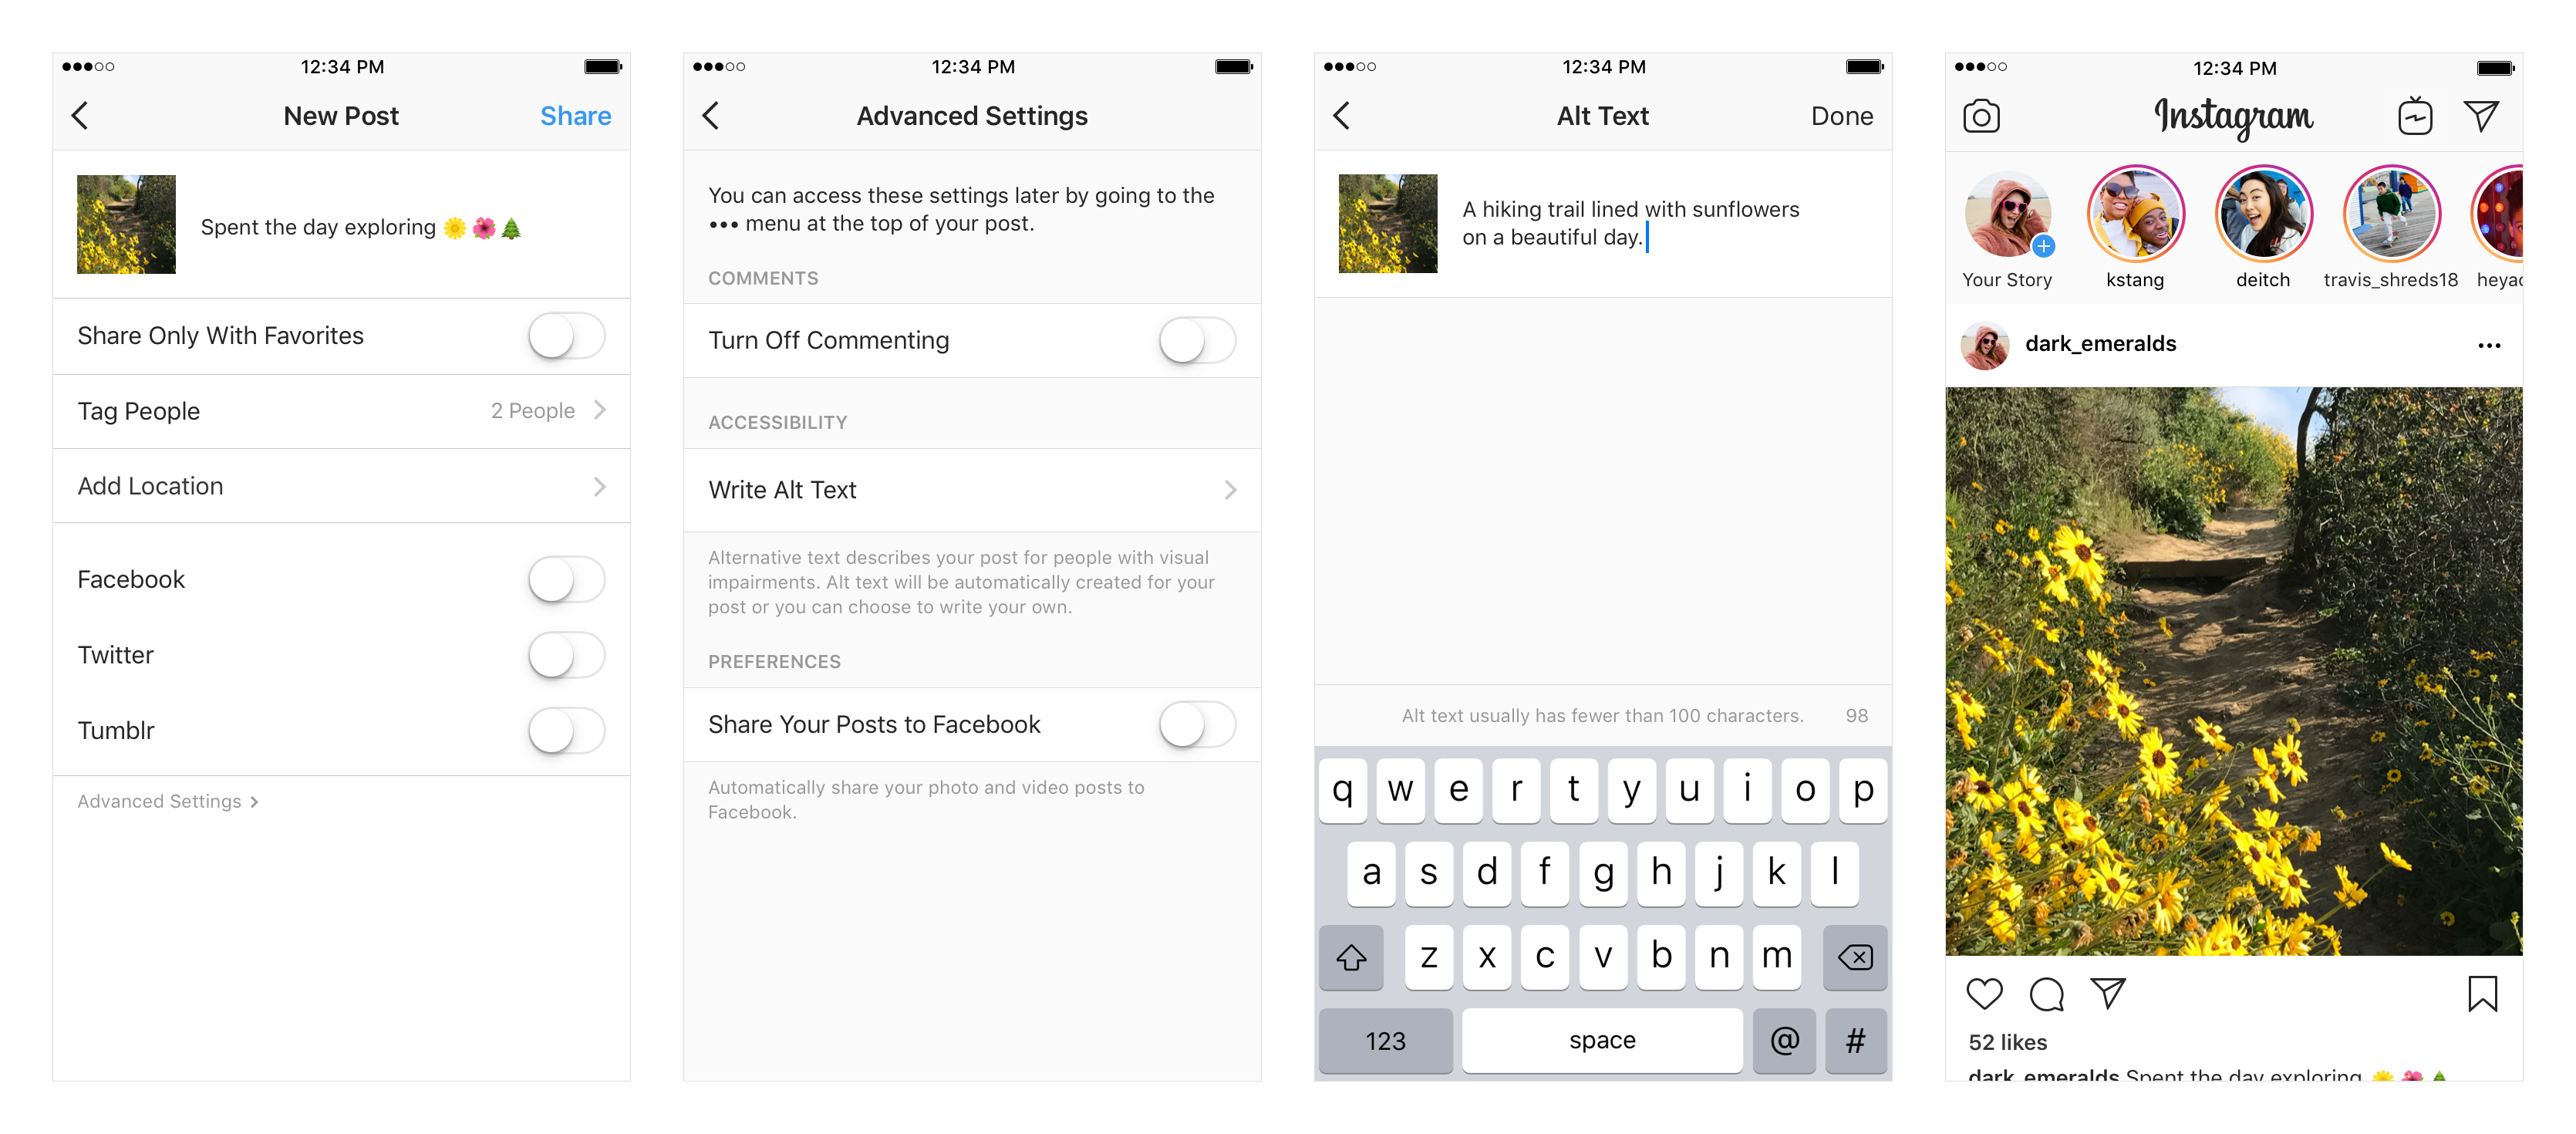 Instagram accessibility